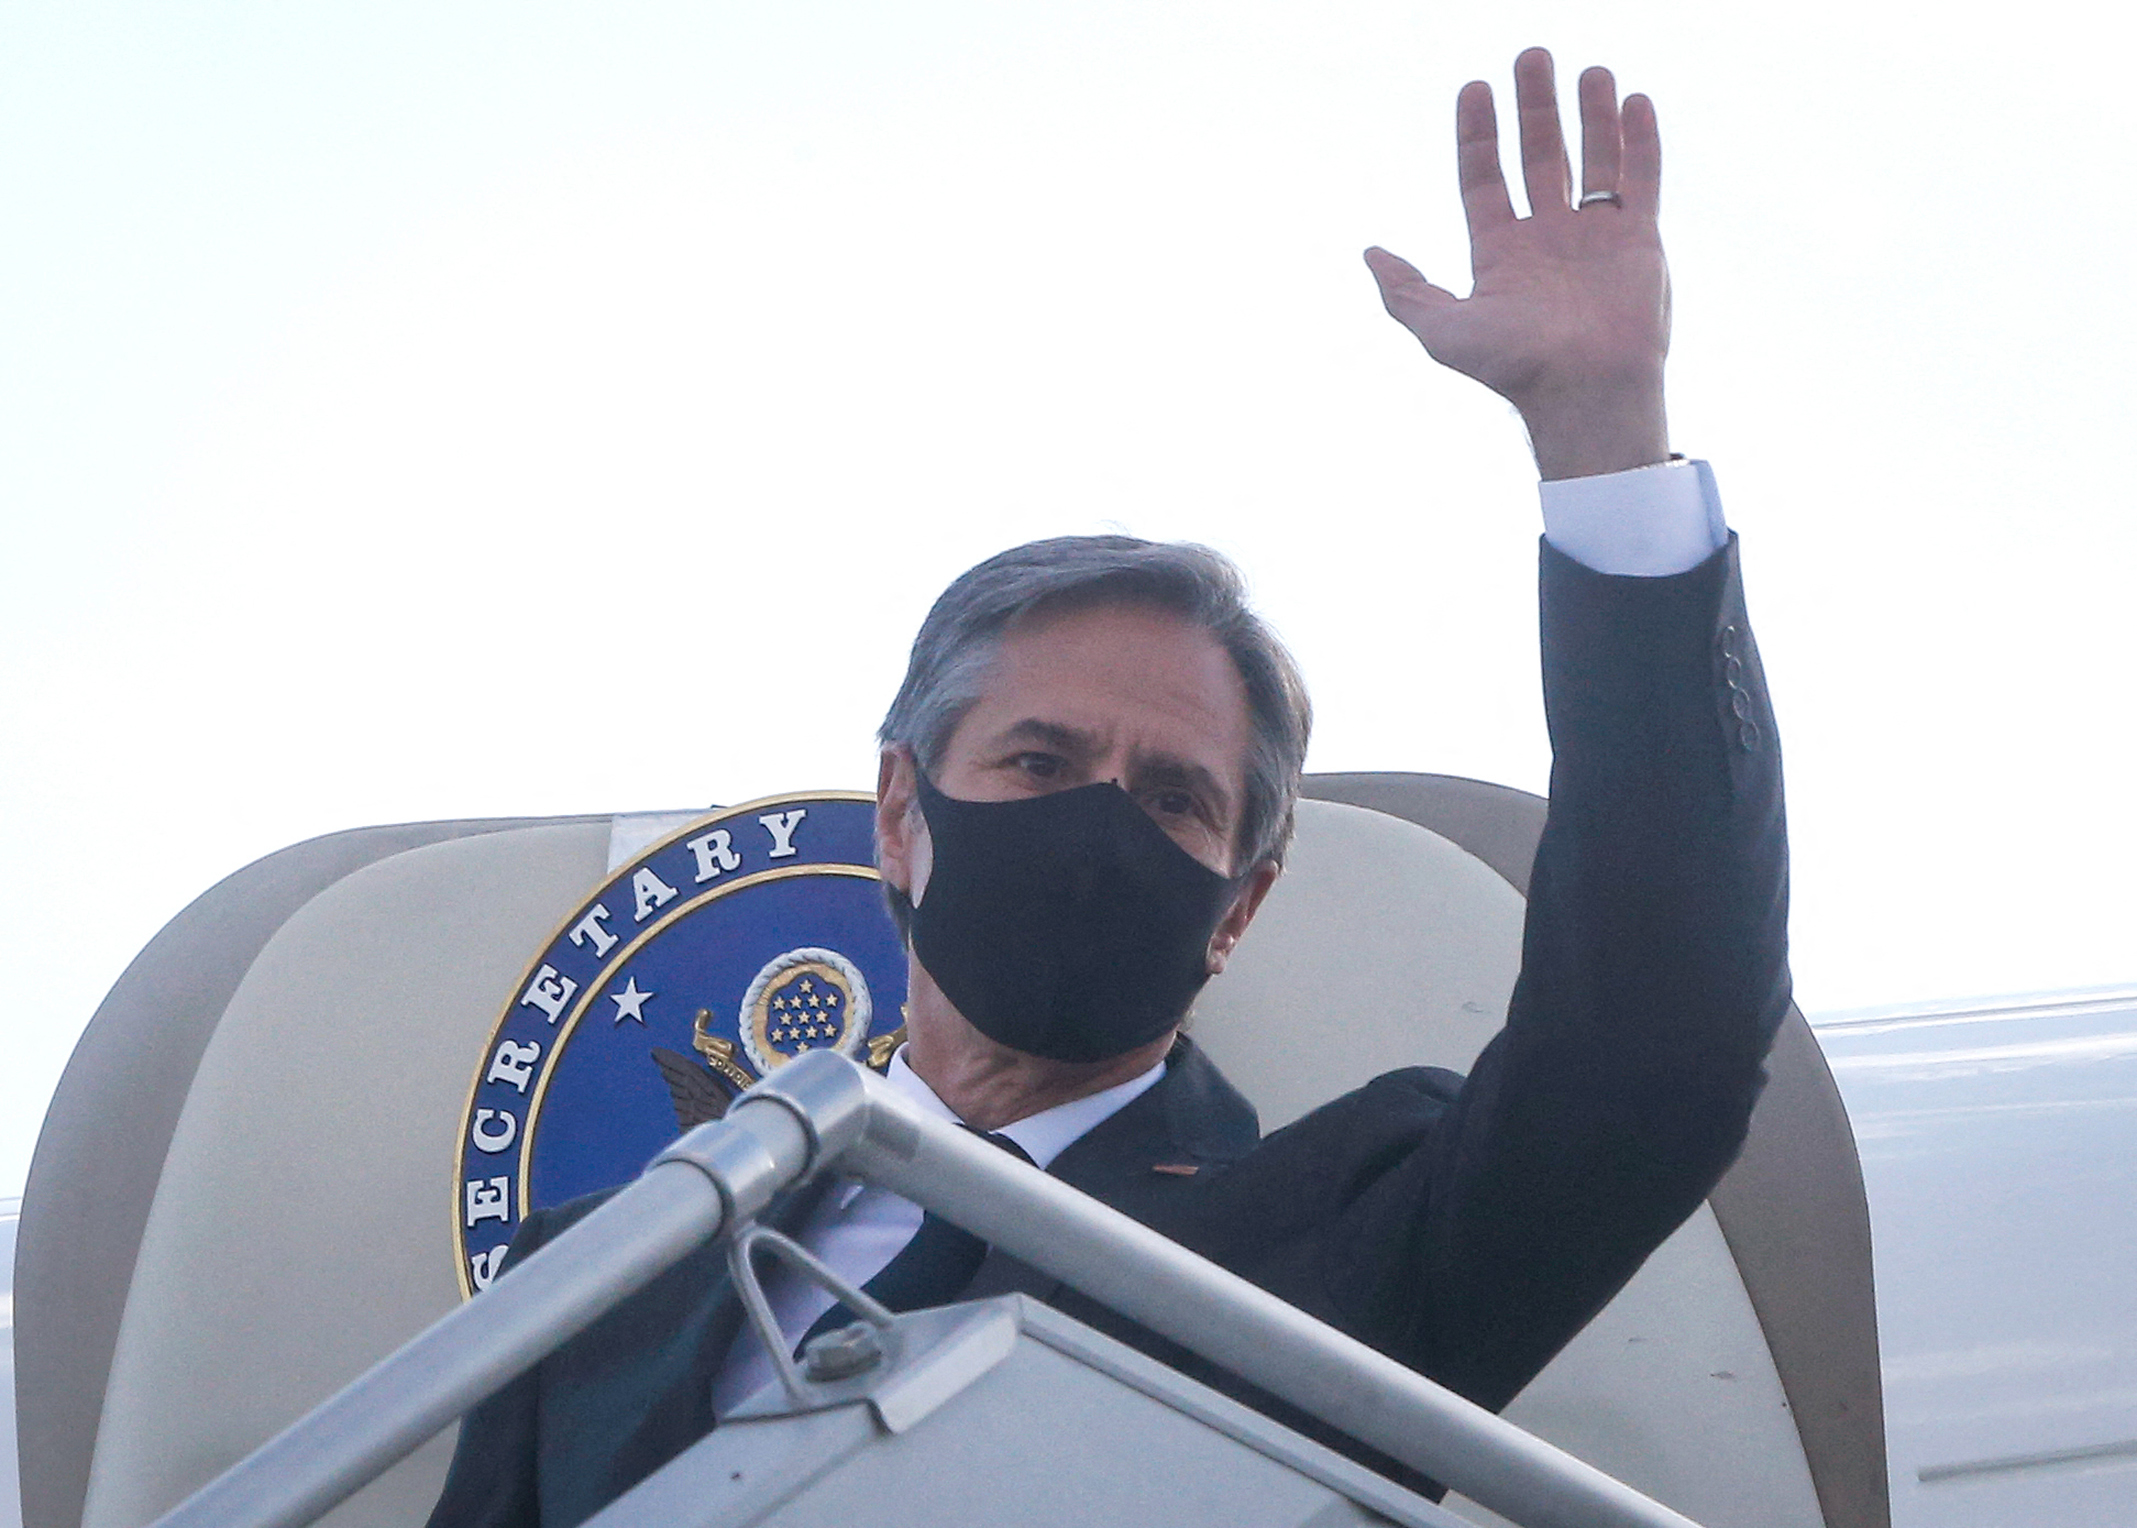 U.S. Secretary of State Antony Blinken waves as he leaves after a diplomatic visit in Ukraine on May 6, 2021. (Efrem Lukatsky/AFP via Getty Images)